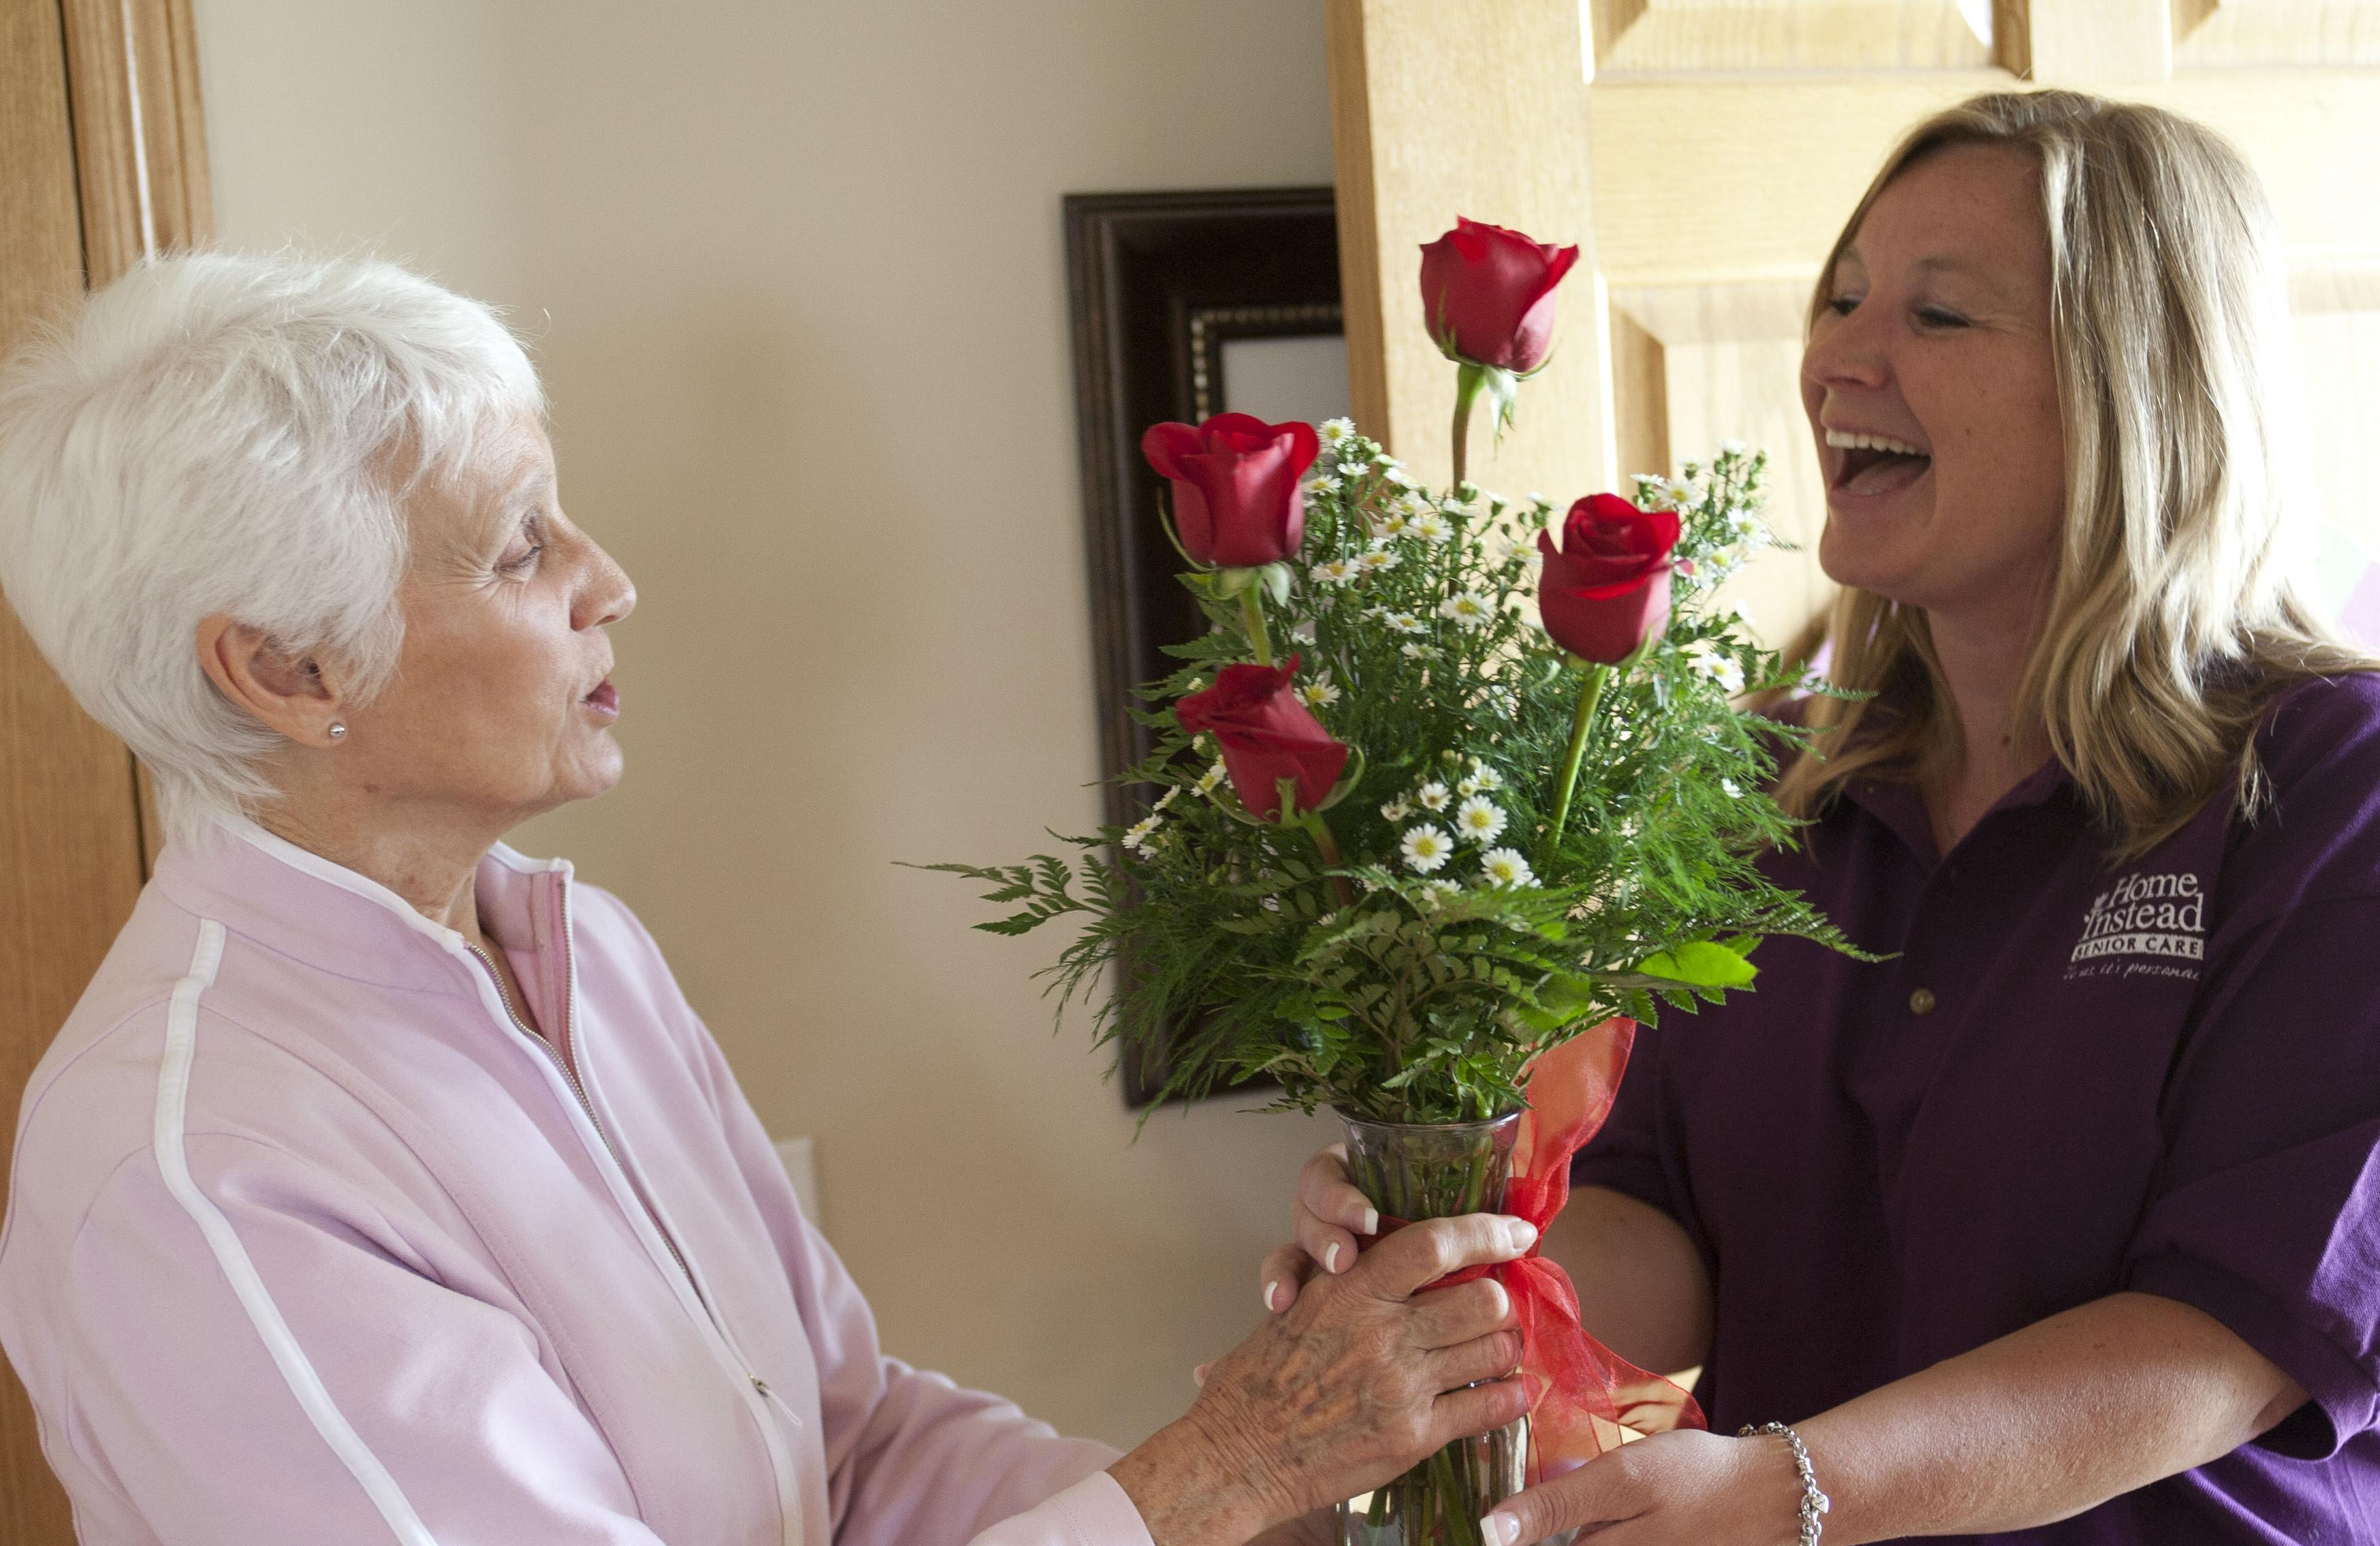 Client and CAREGiver putting flowers in a vase